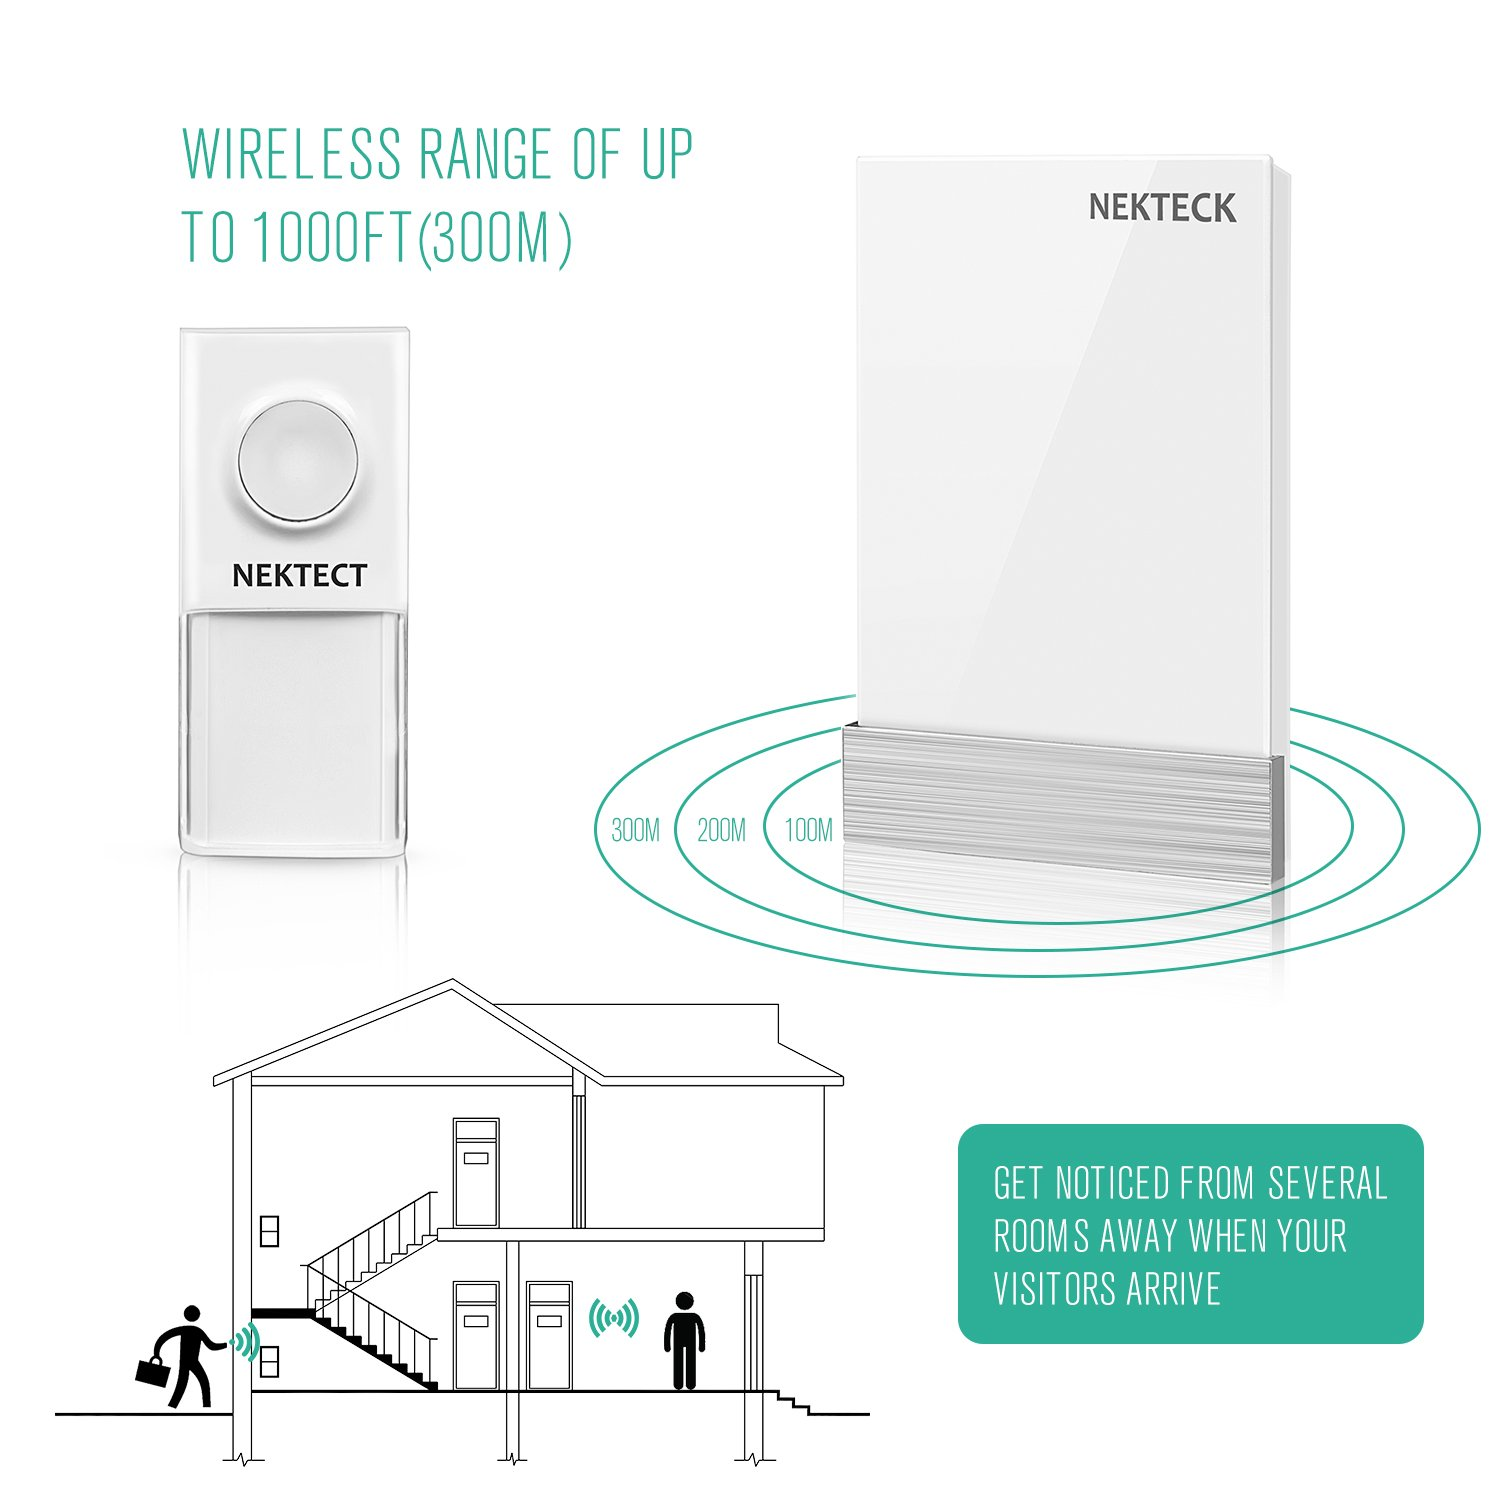 Wireless Doorbell, Nekteck Plug-in Doorbell Chime Battery-Free Kinetic Push Button Transmitter with Over 25 Musical Tones, 3 Volume Levels [150m Range / IP44 Water Proof] - [1 Button & 1 Plugin Chime] by Nekteck (Image #6)